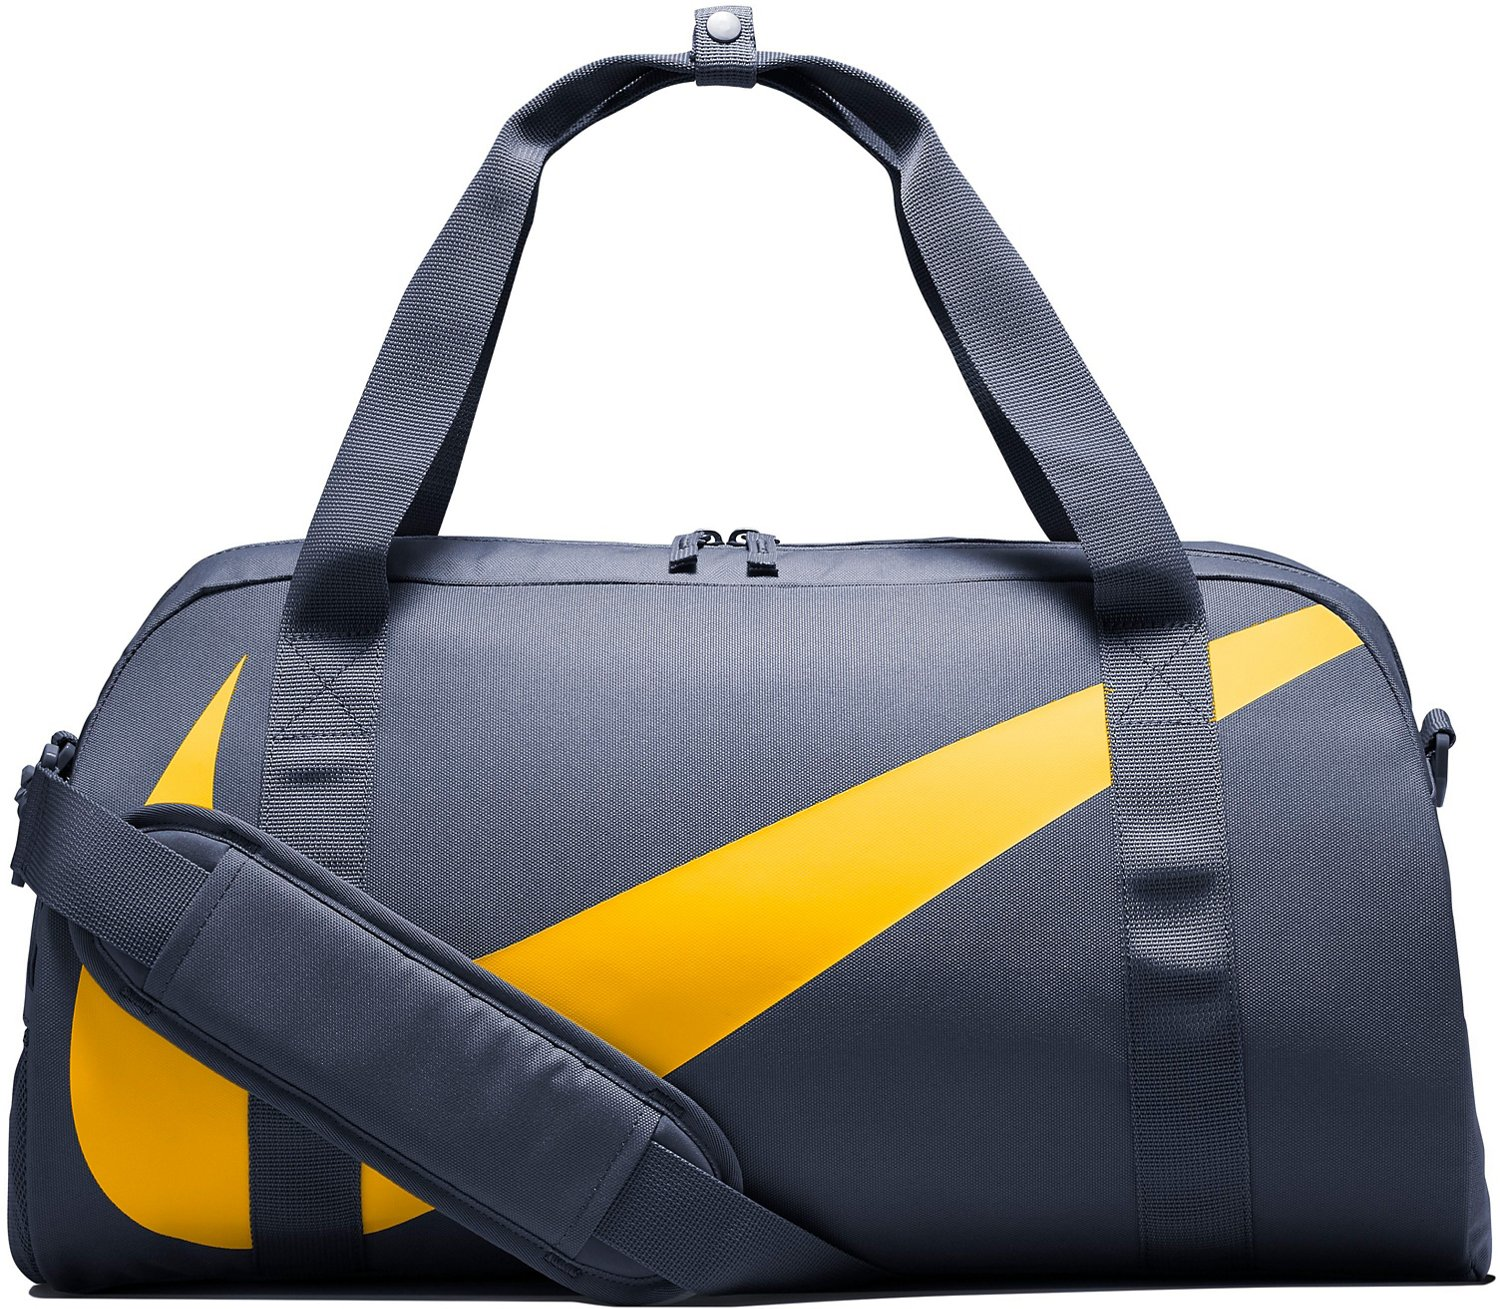 6d5f26aff377 Display product reviews for Nike Women s Gym Club Training Duffel Bag